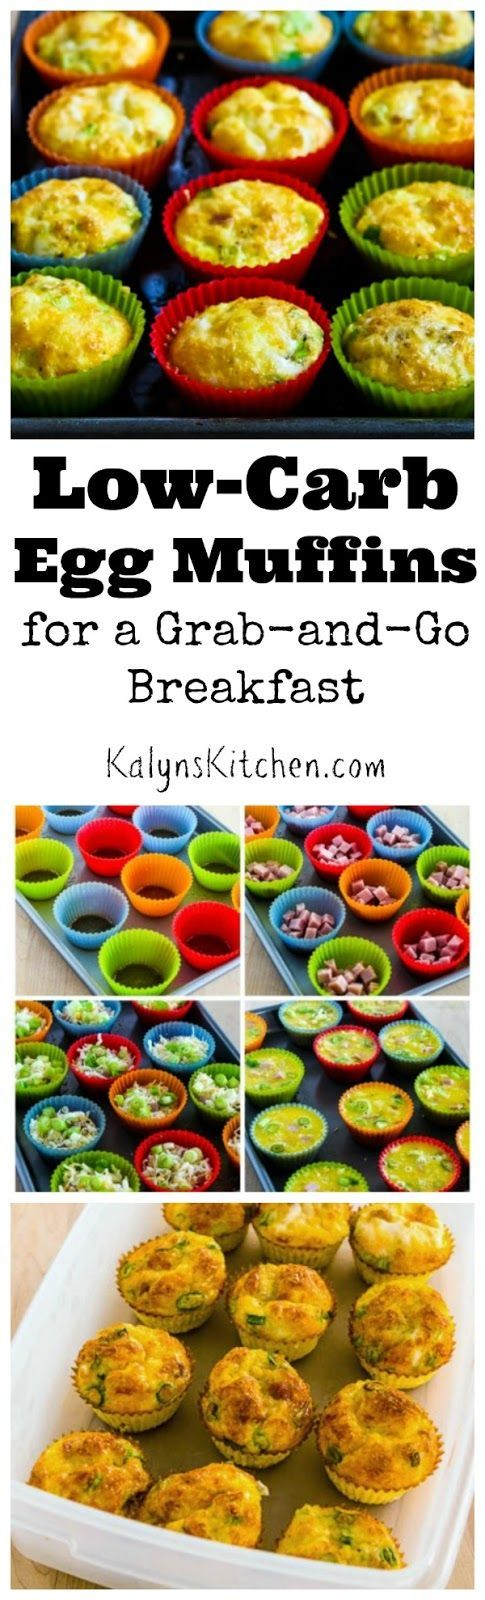 I first posted this easy recipe for Egg Muffins for a Grab-and-Go Breakfast over ten years ago, and since then they've been pinned over 1M times. Week after week, this is the most popular recipe on my blog. (Low-Carb, Gluten-Free) [from KalynsKitchen.com]